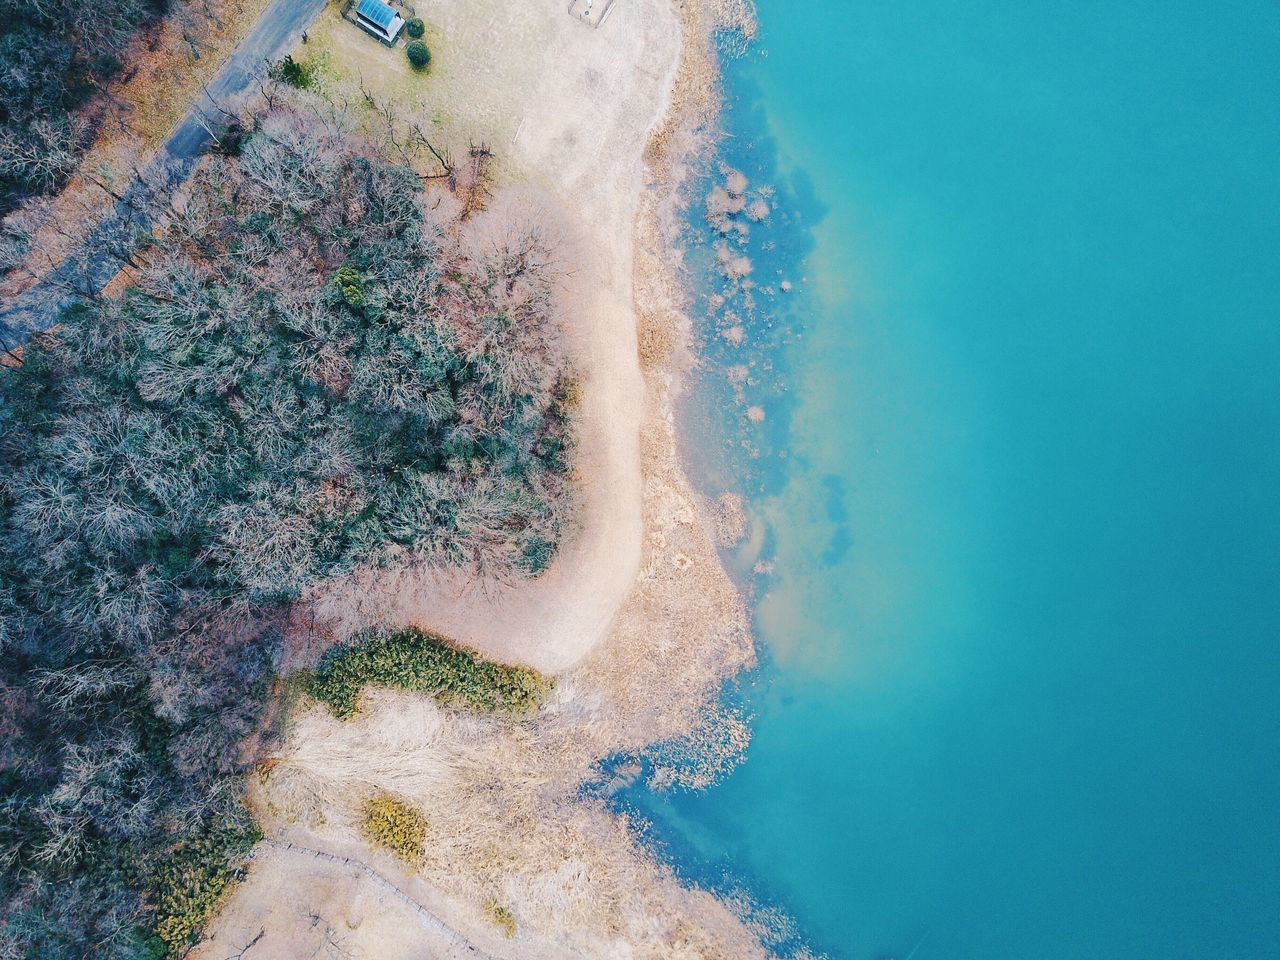 Nature Beauty In Nature Tranquility Day Water Non-urban Scene Clear Sky Physical Geography Outdoors Landscape No People Sky Hot Spring Power In Nature Geyser Erupting Drone  Dronephotography Drone  Aerial View Aerial Shot Aerial Photography Aerospace Industry Vscocam VSCO Flying High